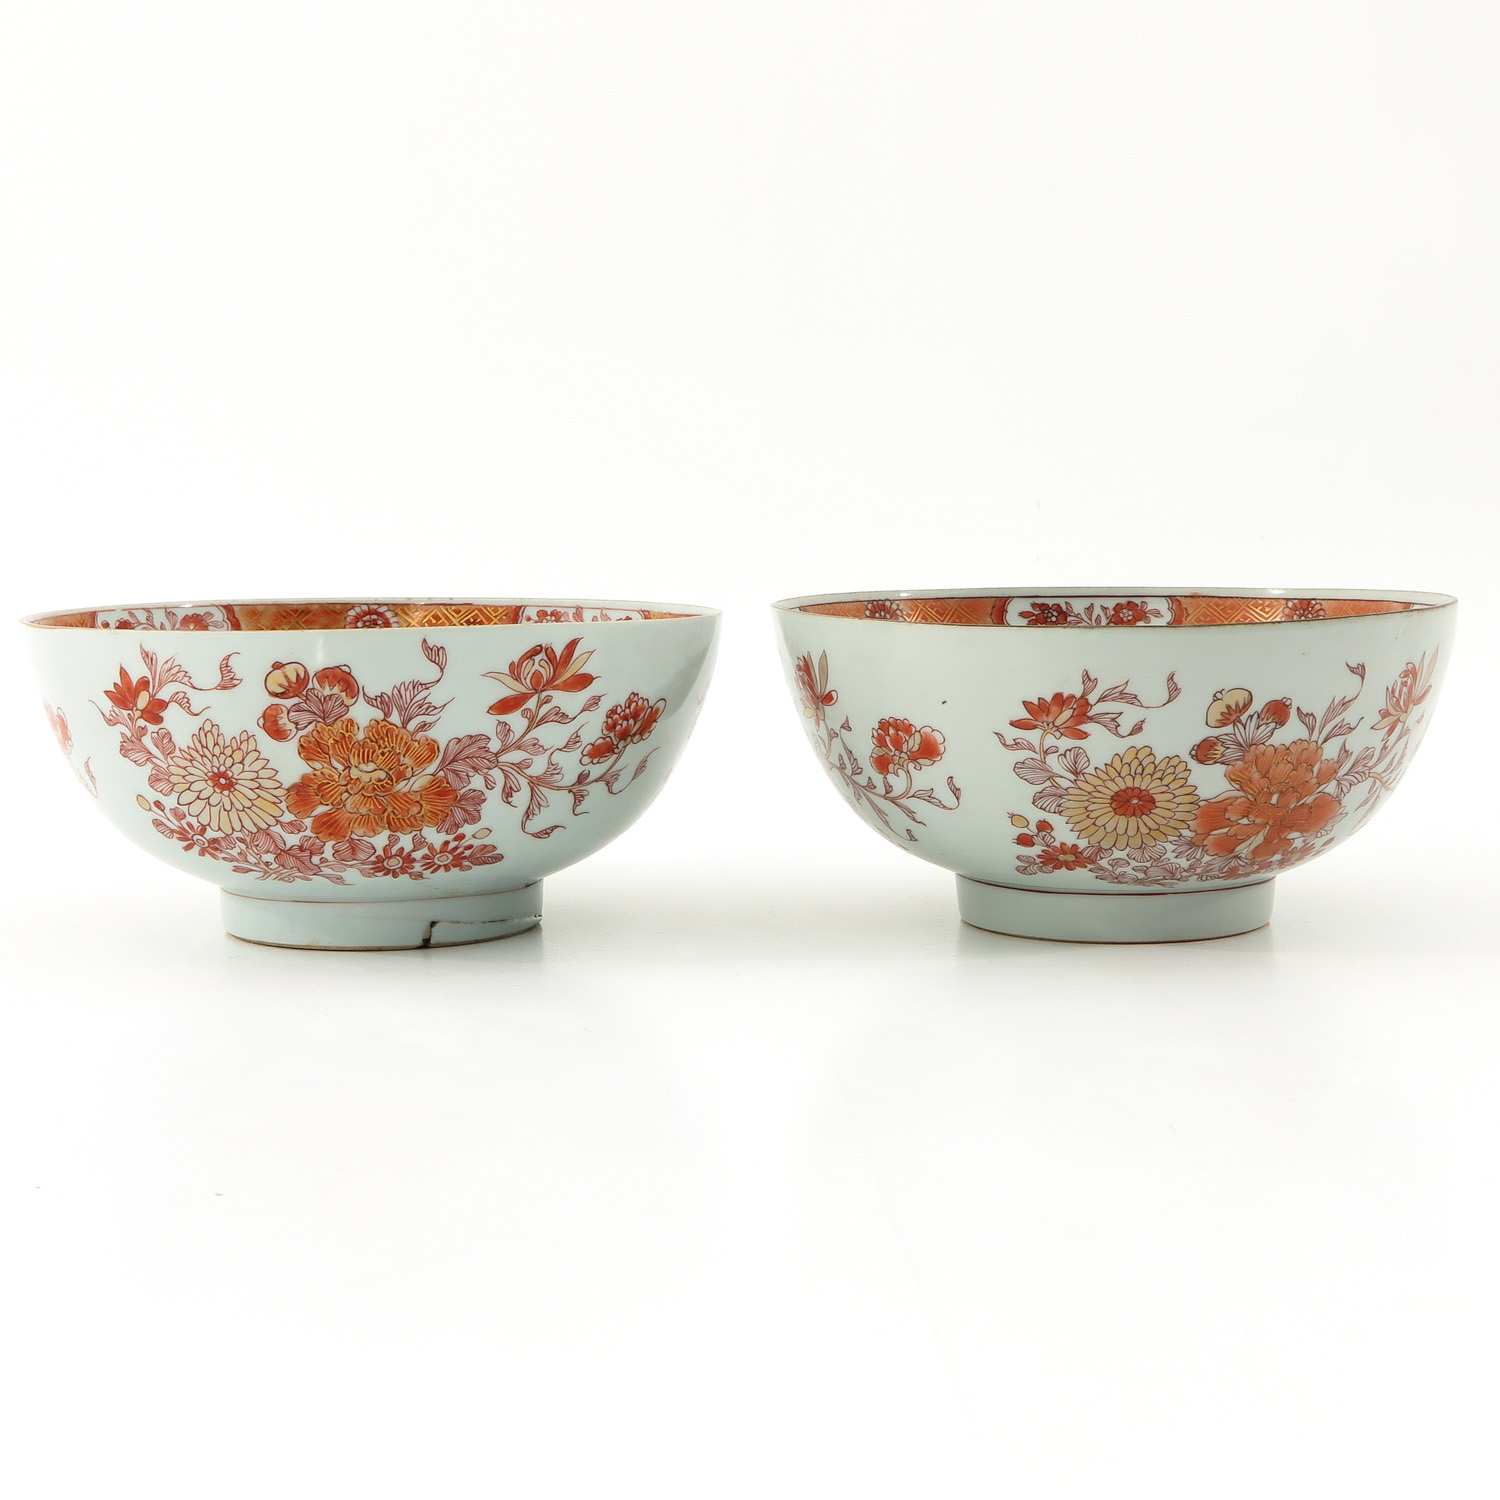 A Pair of Milk and Blood Decor Bowls